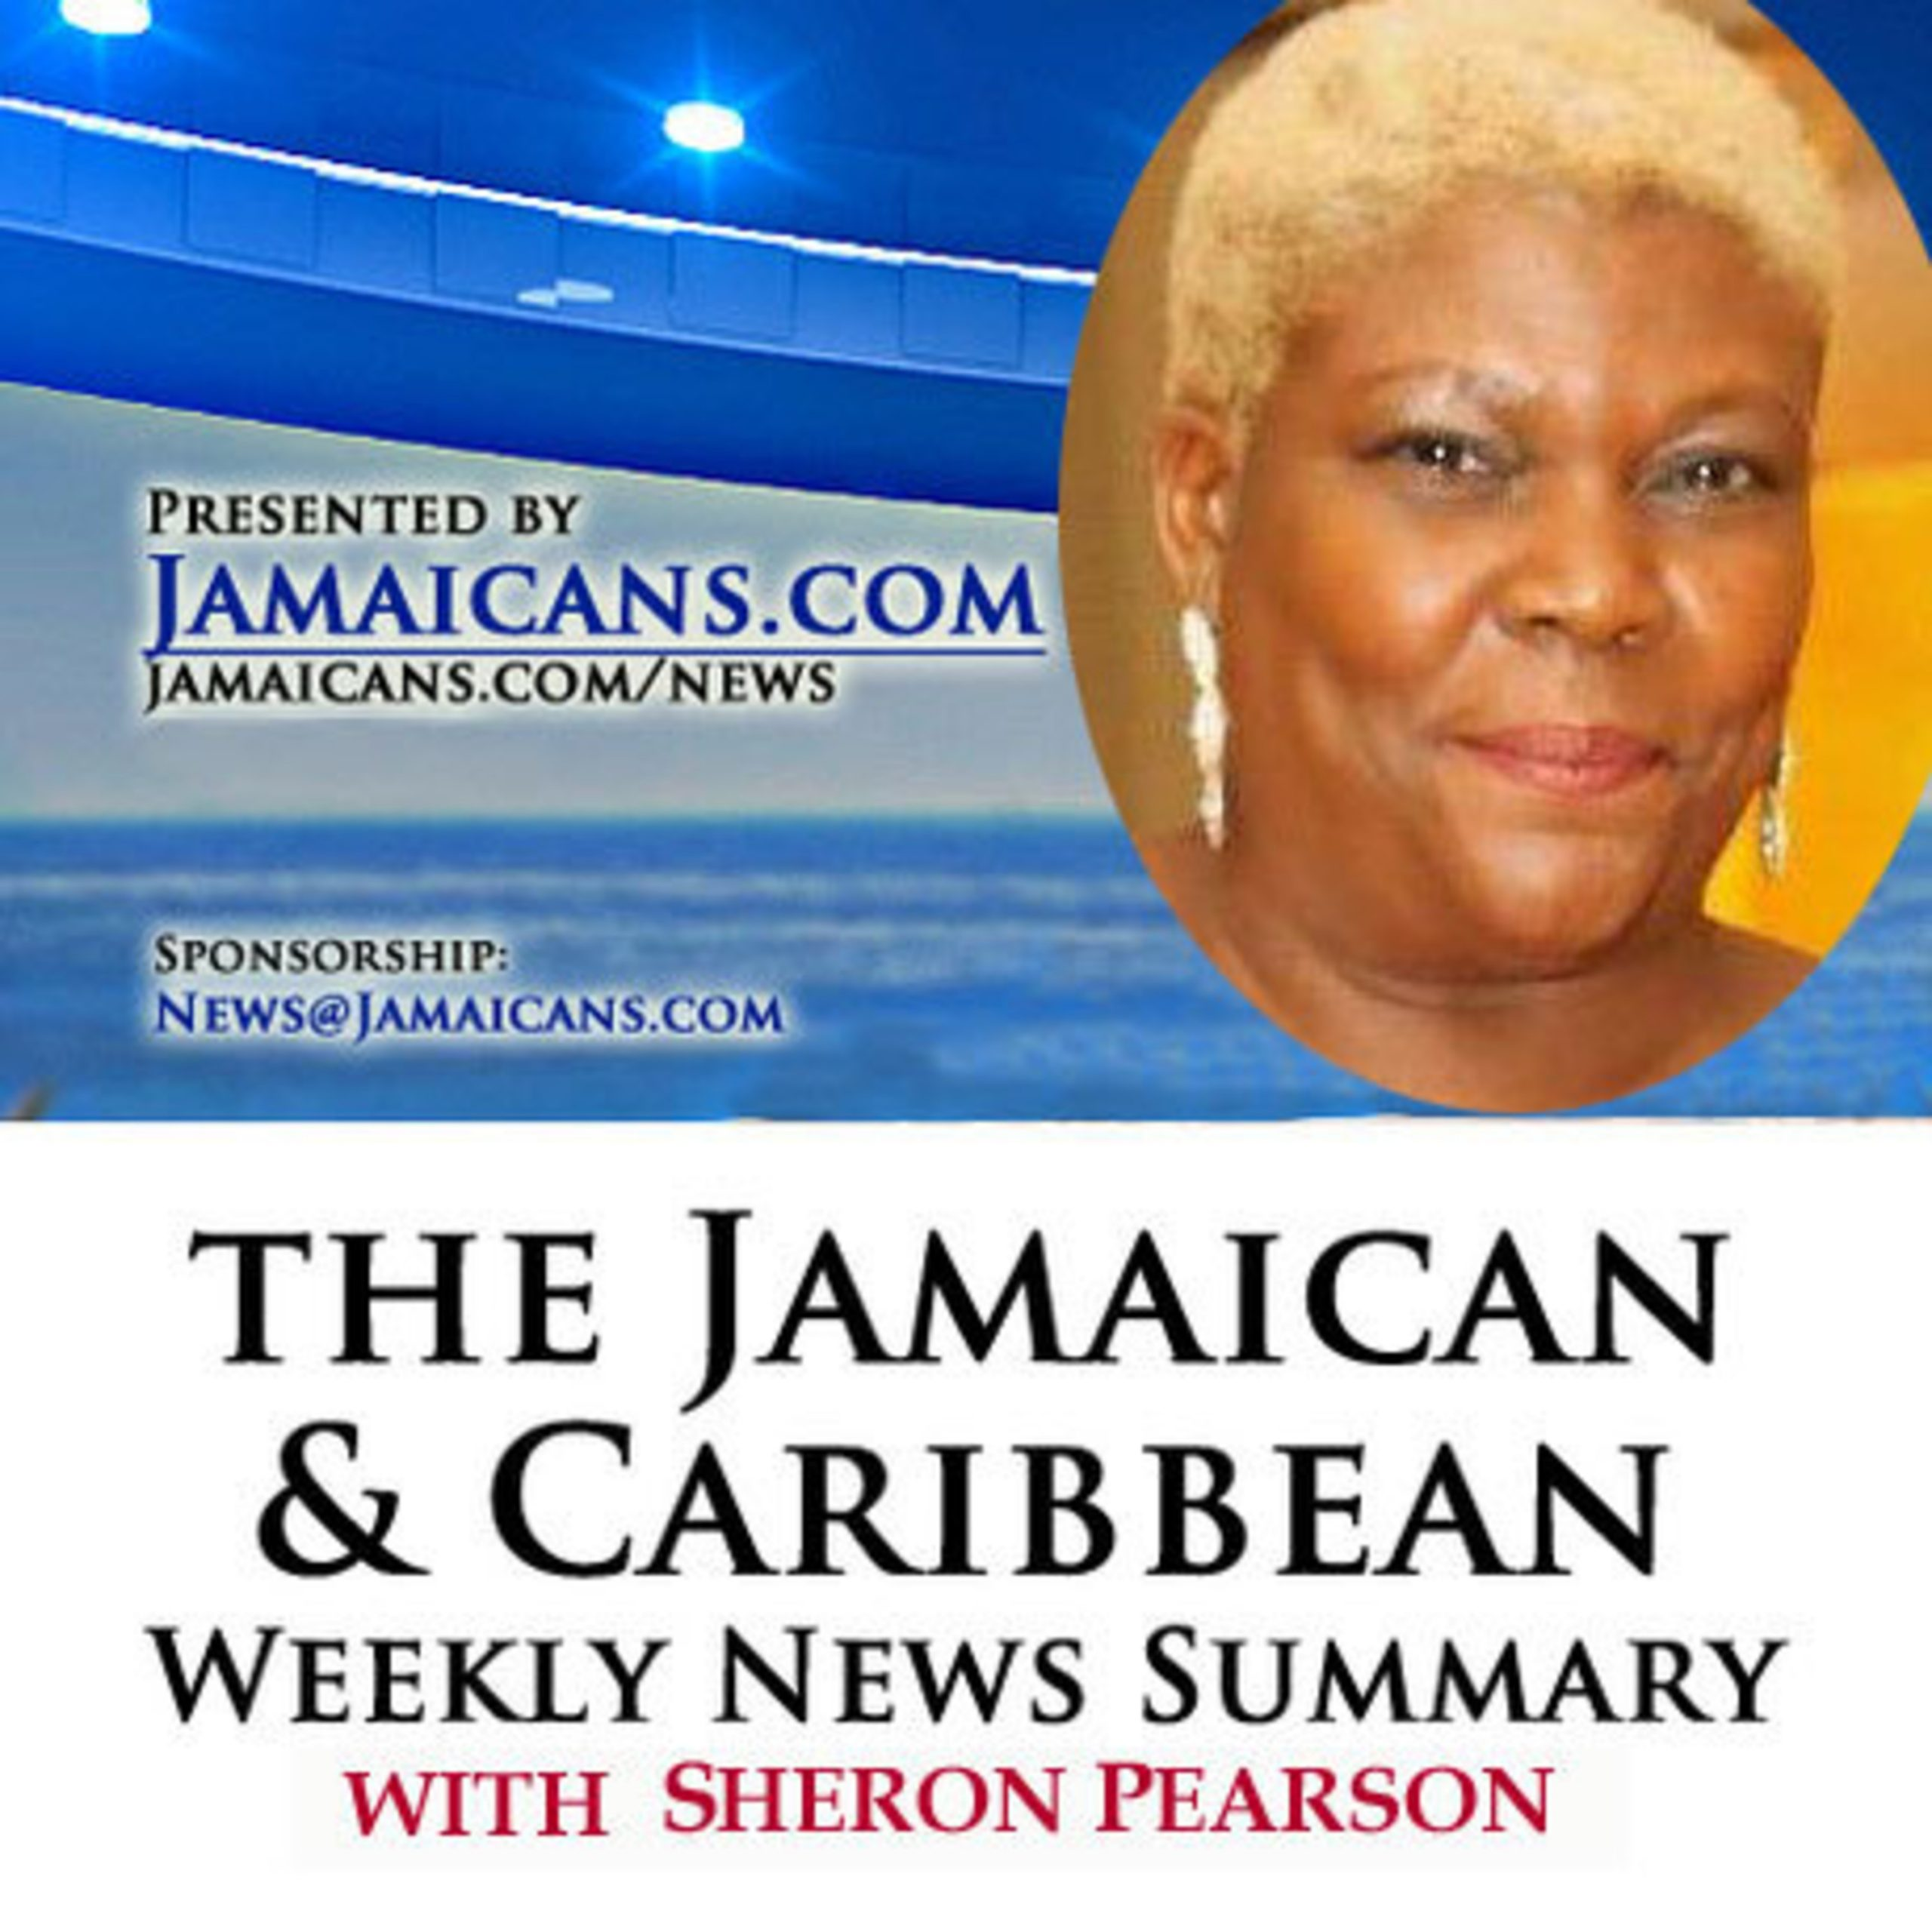 Listen to the Podcast of The Jamaica & Caribbean Weekly News Summary for the week ending October 11, 2019